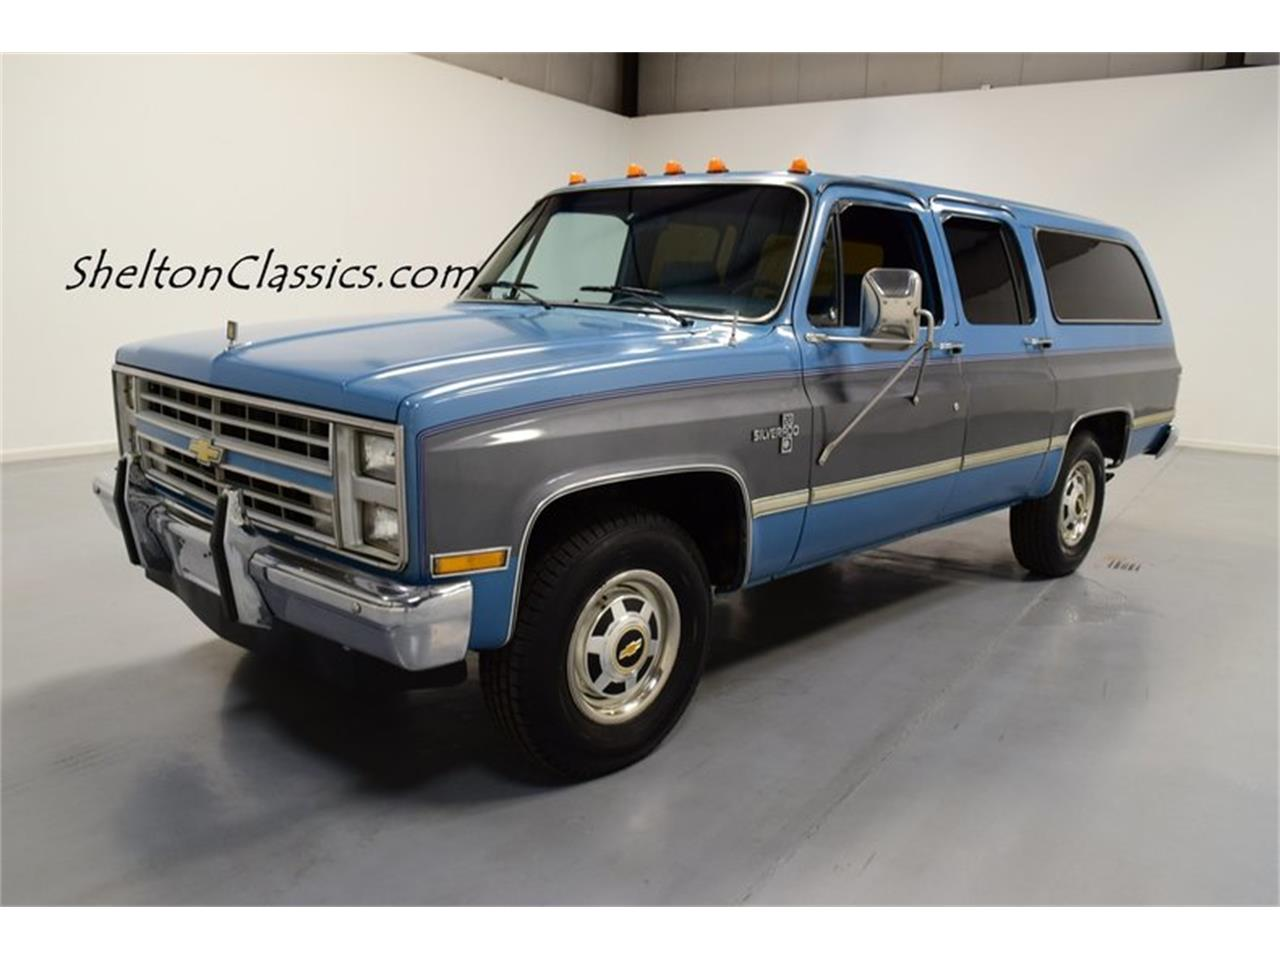 Large Picture Of 86 Chevrolet Suburban 9 950 00 On7s